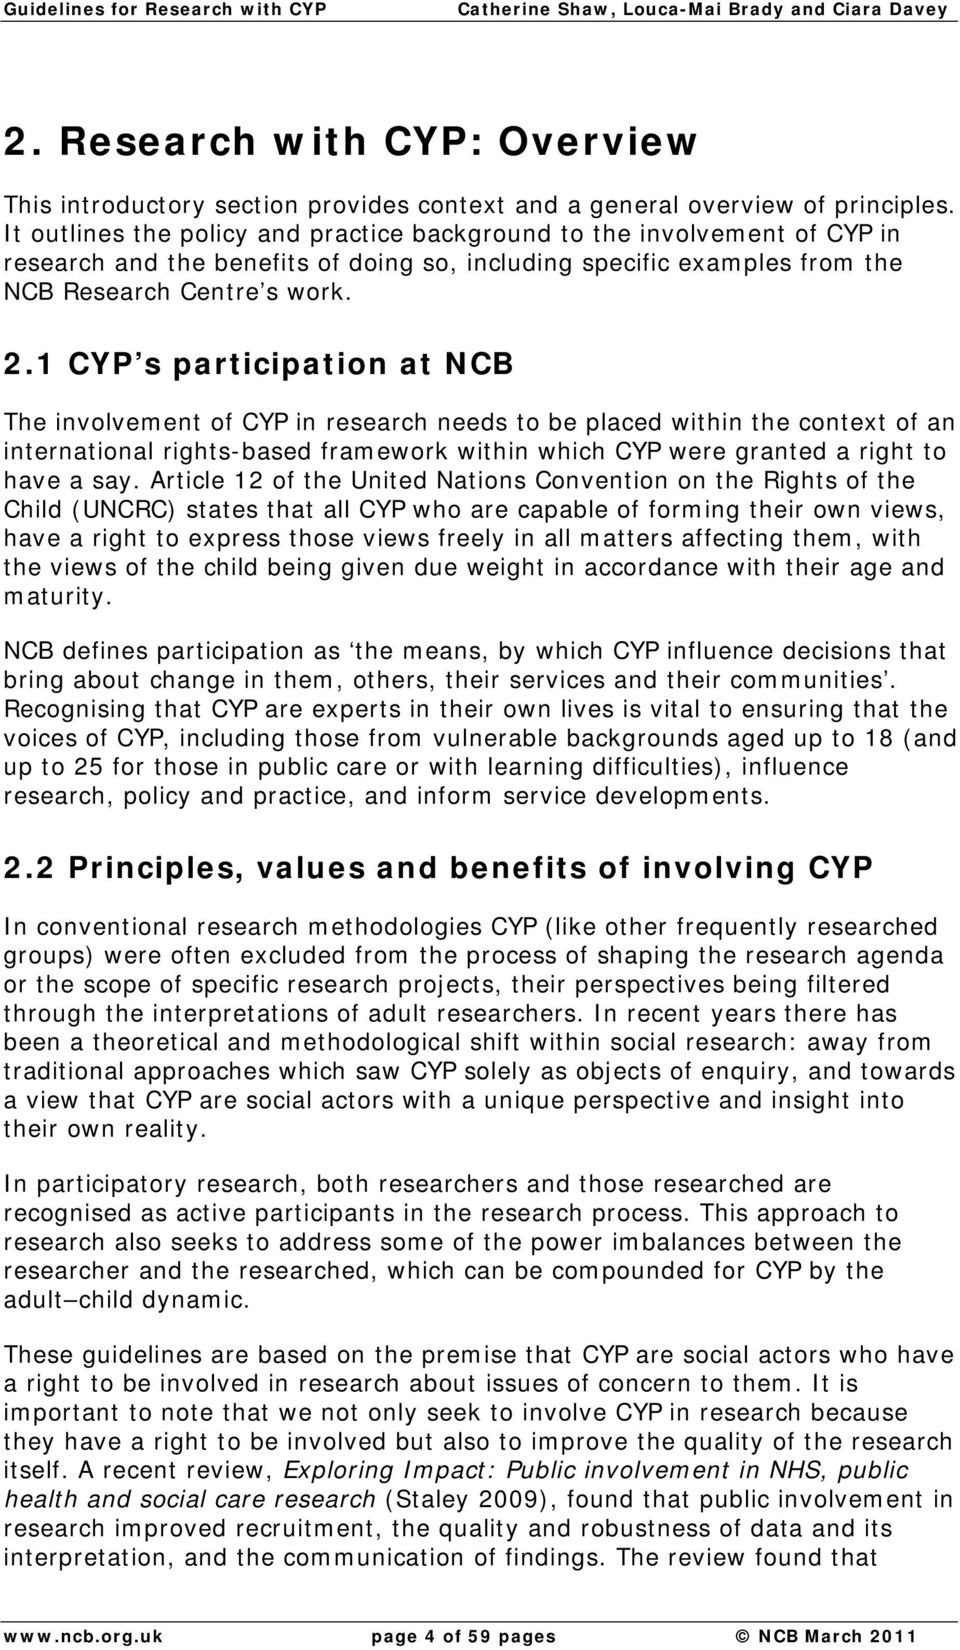 1 CYP s participation at NCB The involvement of CYP in research needs to be placed within the context of an international rights-based framework within which CYP were granted a right to have a say.